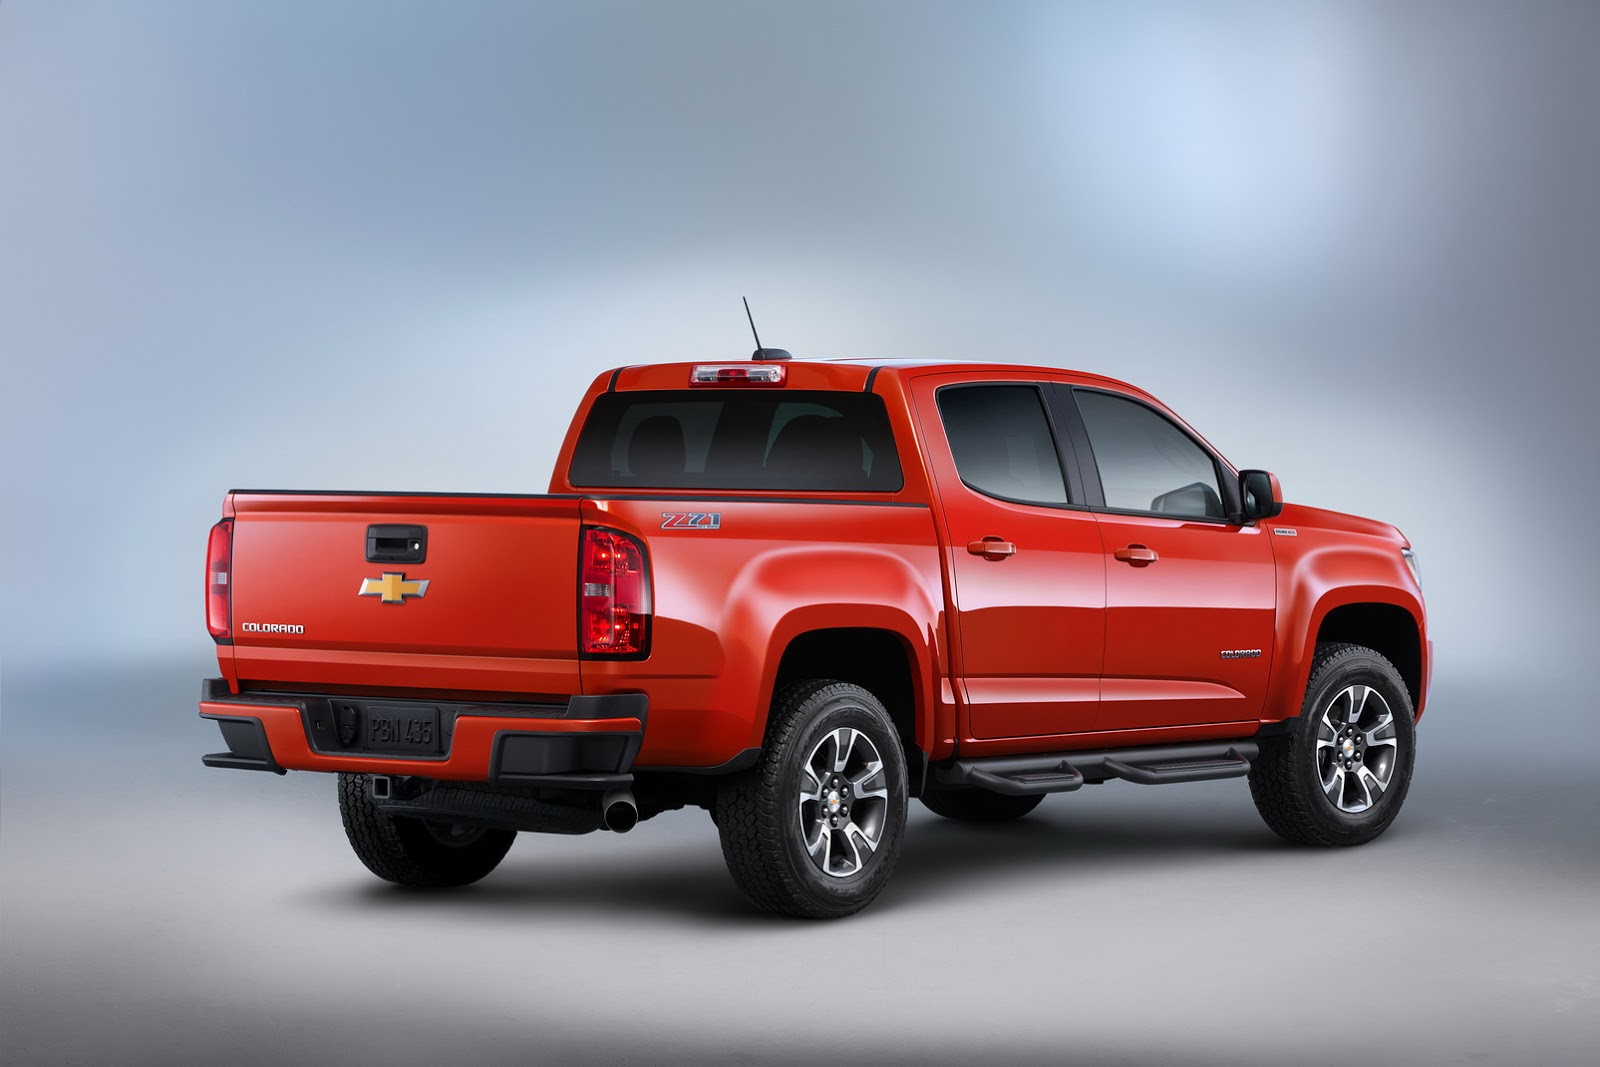 2016 chevrolet colorado duramax turbodiesel 7 2016 chevy colorado and gmc canyon gain [ 1600 x 1067 Pixel ]